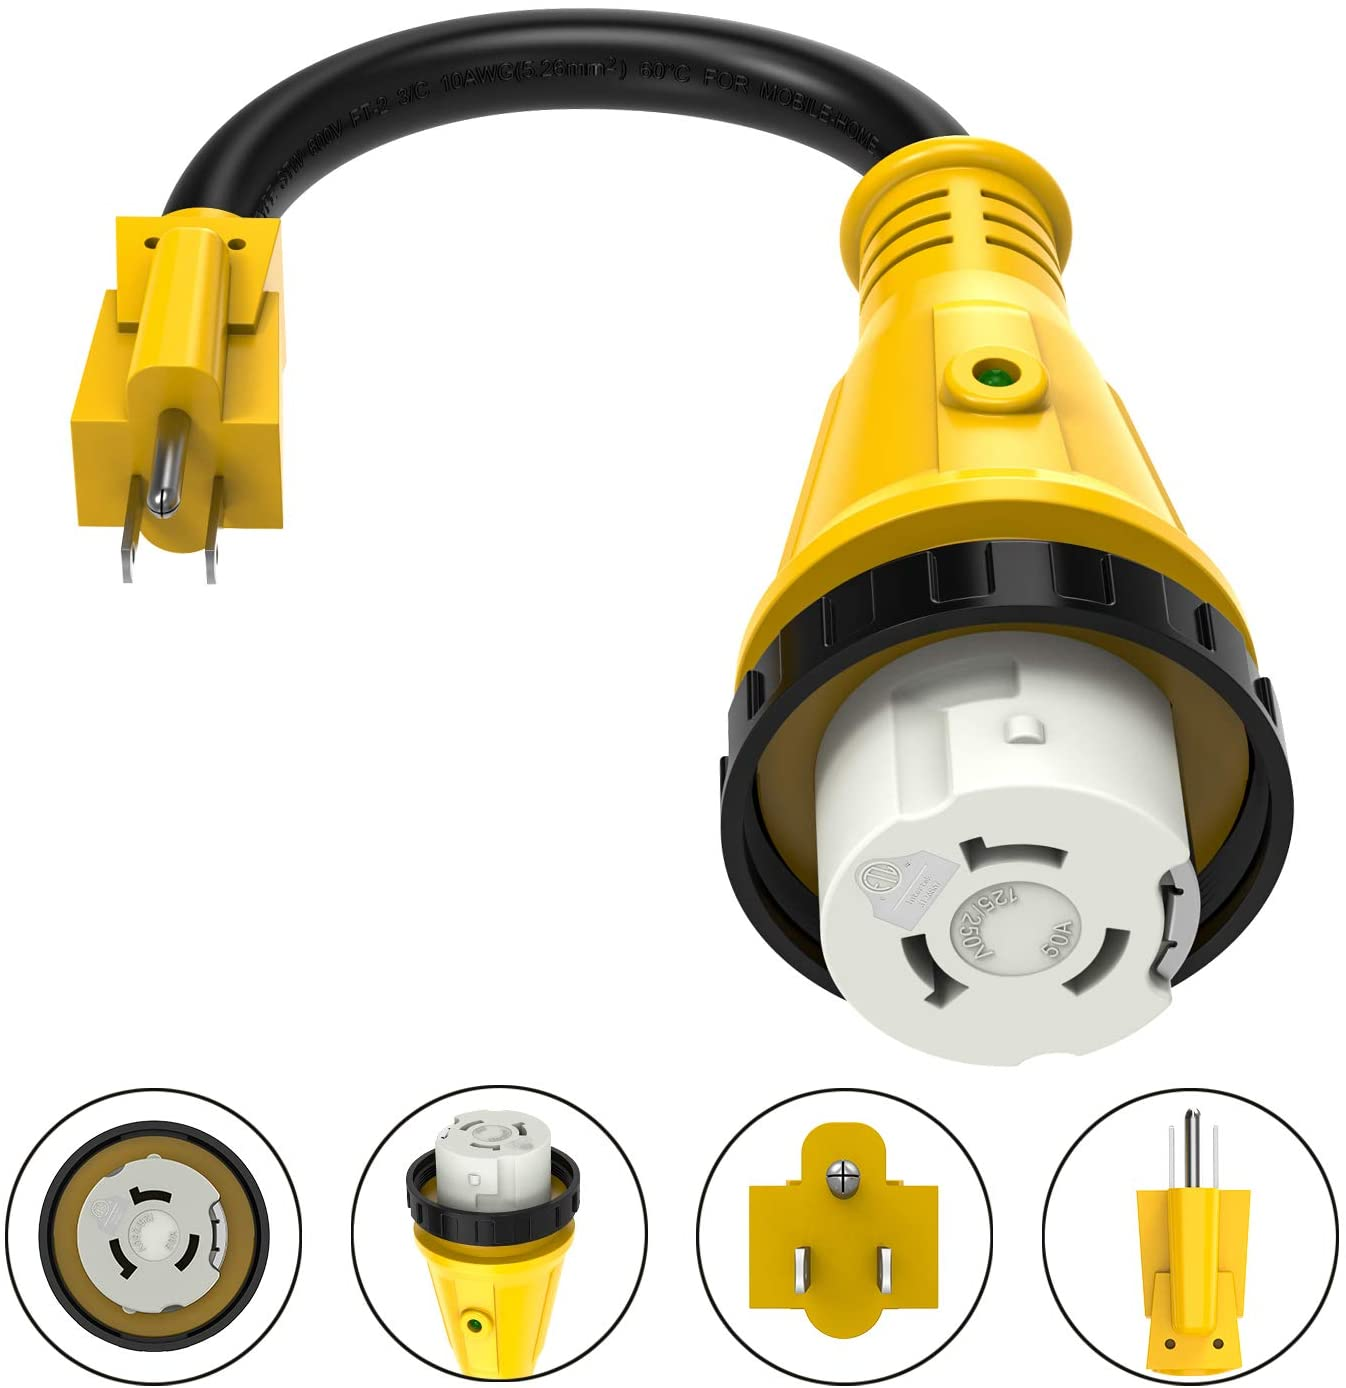 Kohree 15 Amp to 50 Amp RV Power Cord Plug Adapter Dogbone Heavy Duty Electrical Power Adapter with Twist Lock, LED Indicator, 15M/50F